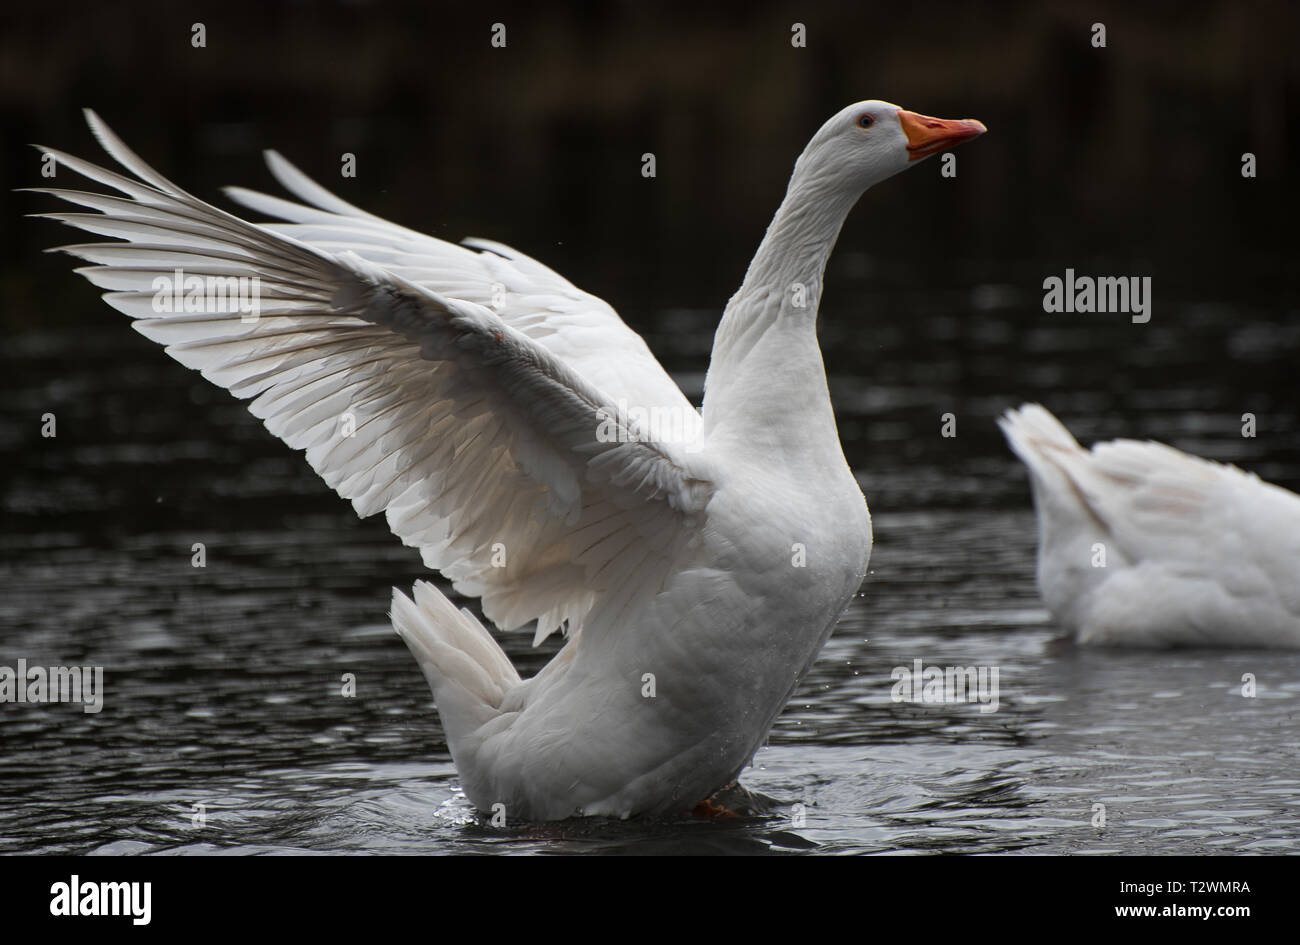 White goose on water with wings extended - Stock Image